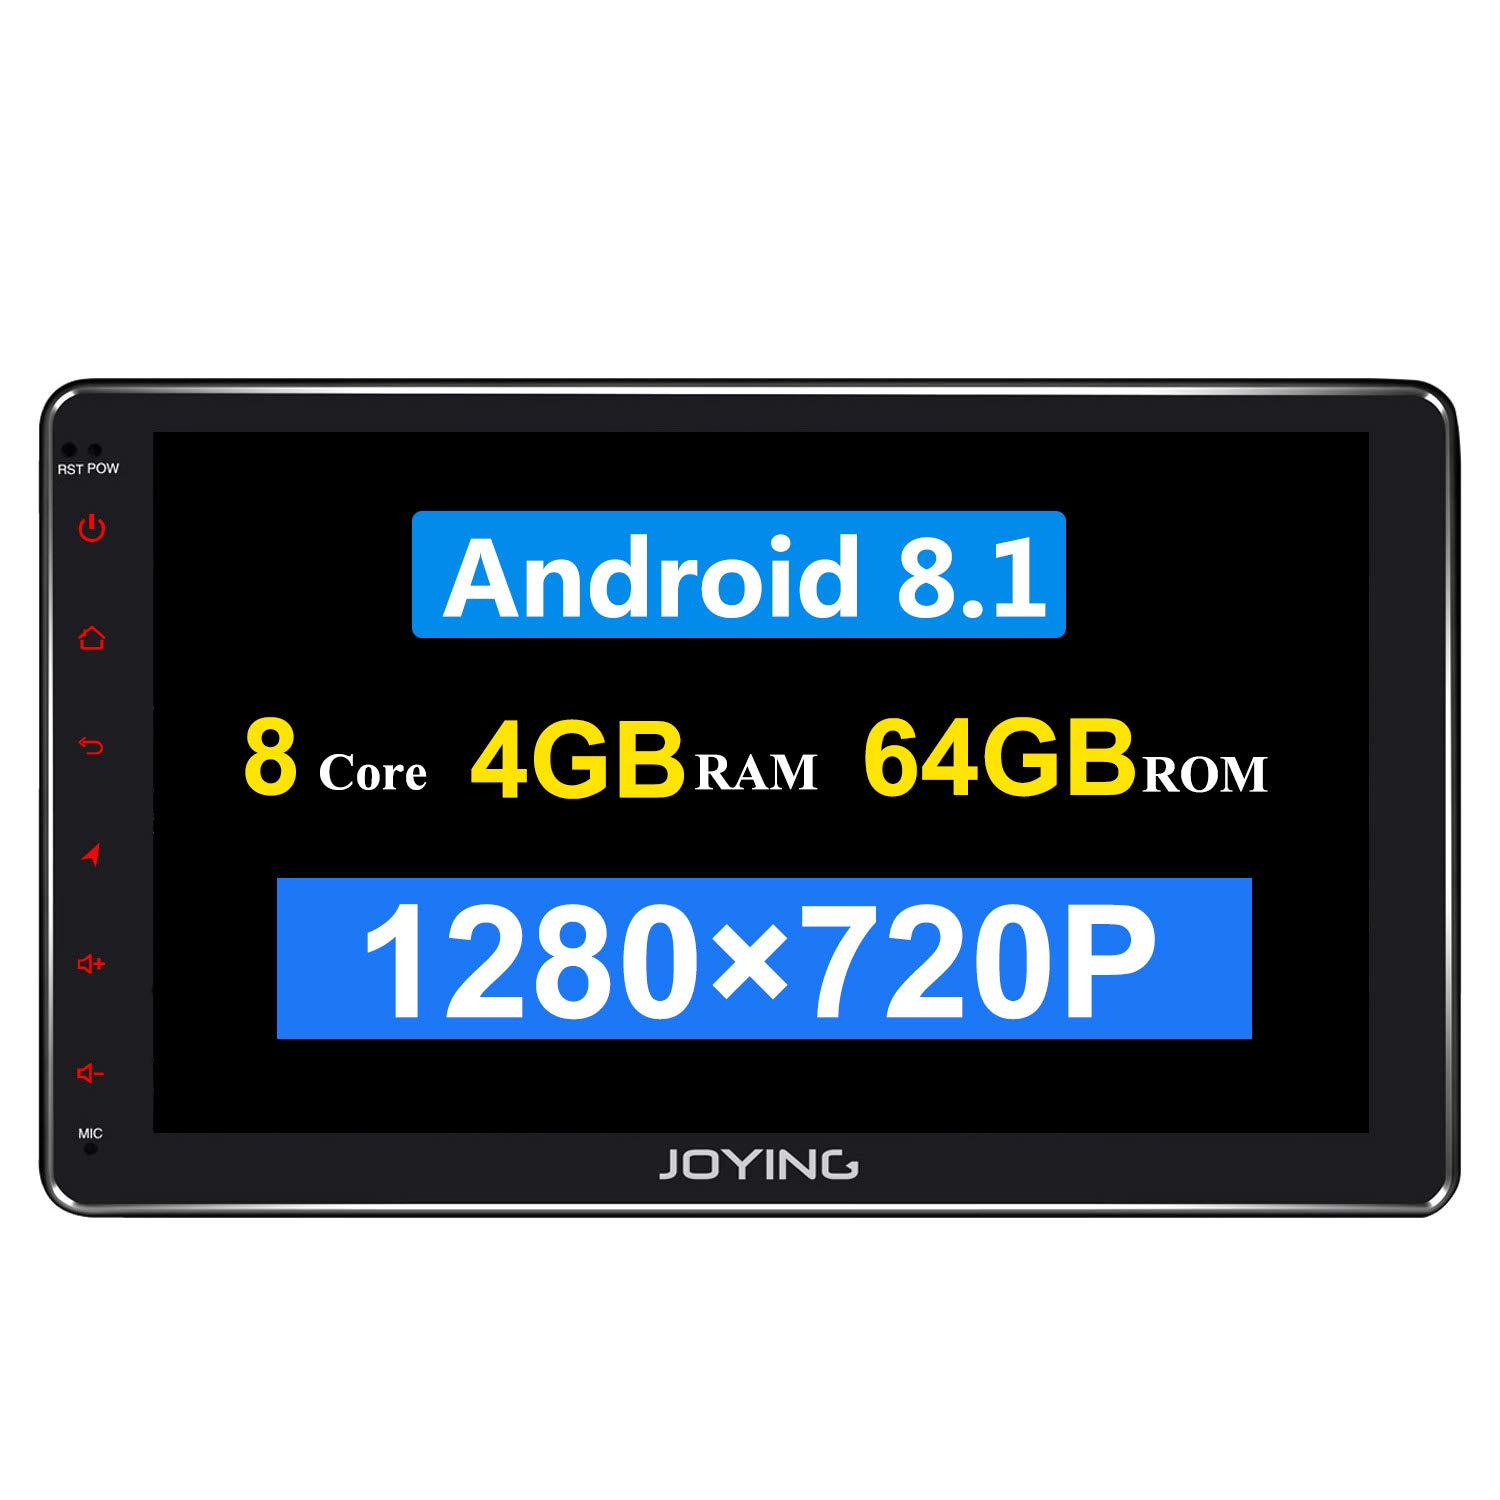 JOYING 10.1 Double Din Android 8.1 4GB + 64GB Car Stereo Built-in DSP LCD Touchscreen with 4G SIM Card Slot & 1280×720P Reslution - Supprot Android Auto DSP SPDIF Fast Boot WiFi OBD2 DVR by JOYING